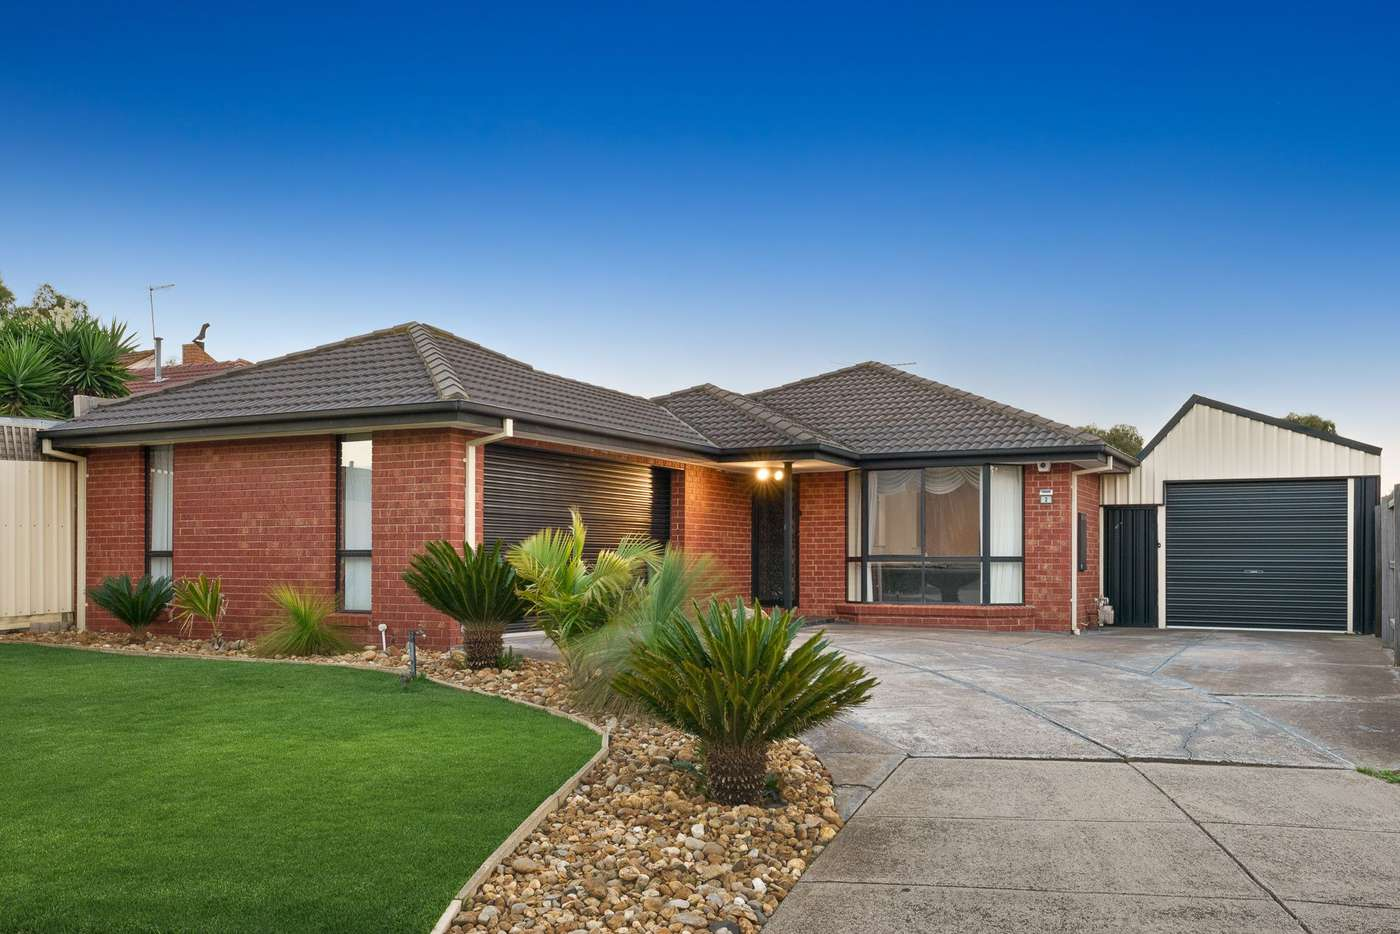 Main view of Homely house listing, 2 Darriwill Close, Delahey VIC 3037